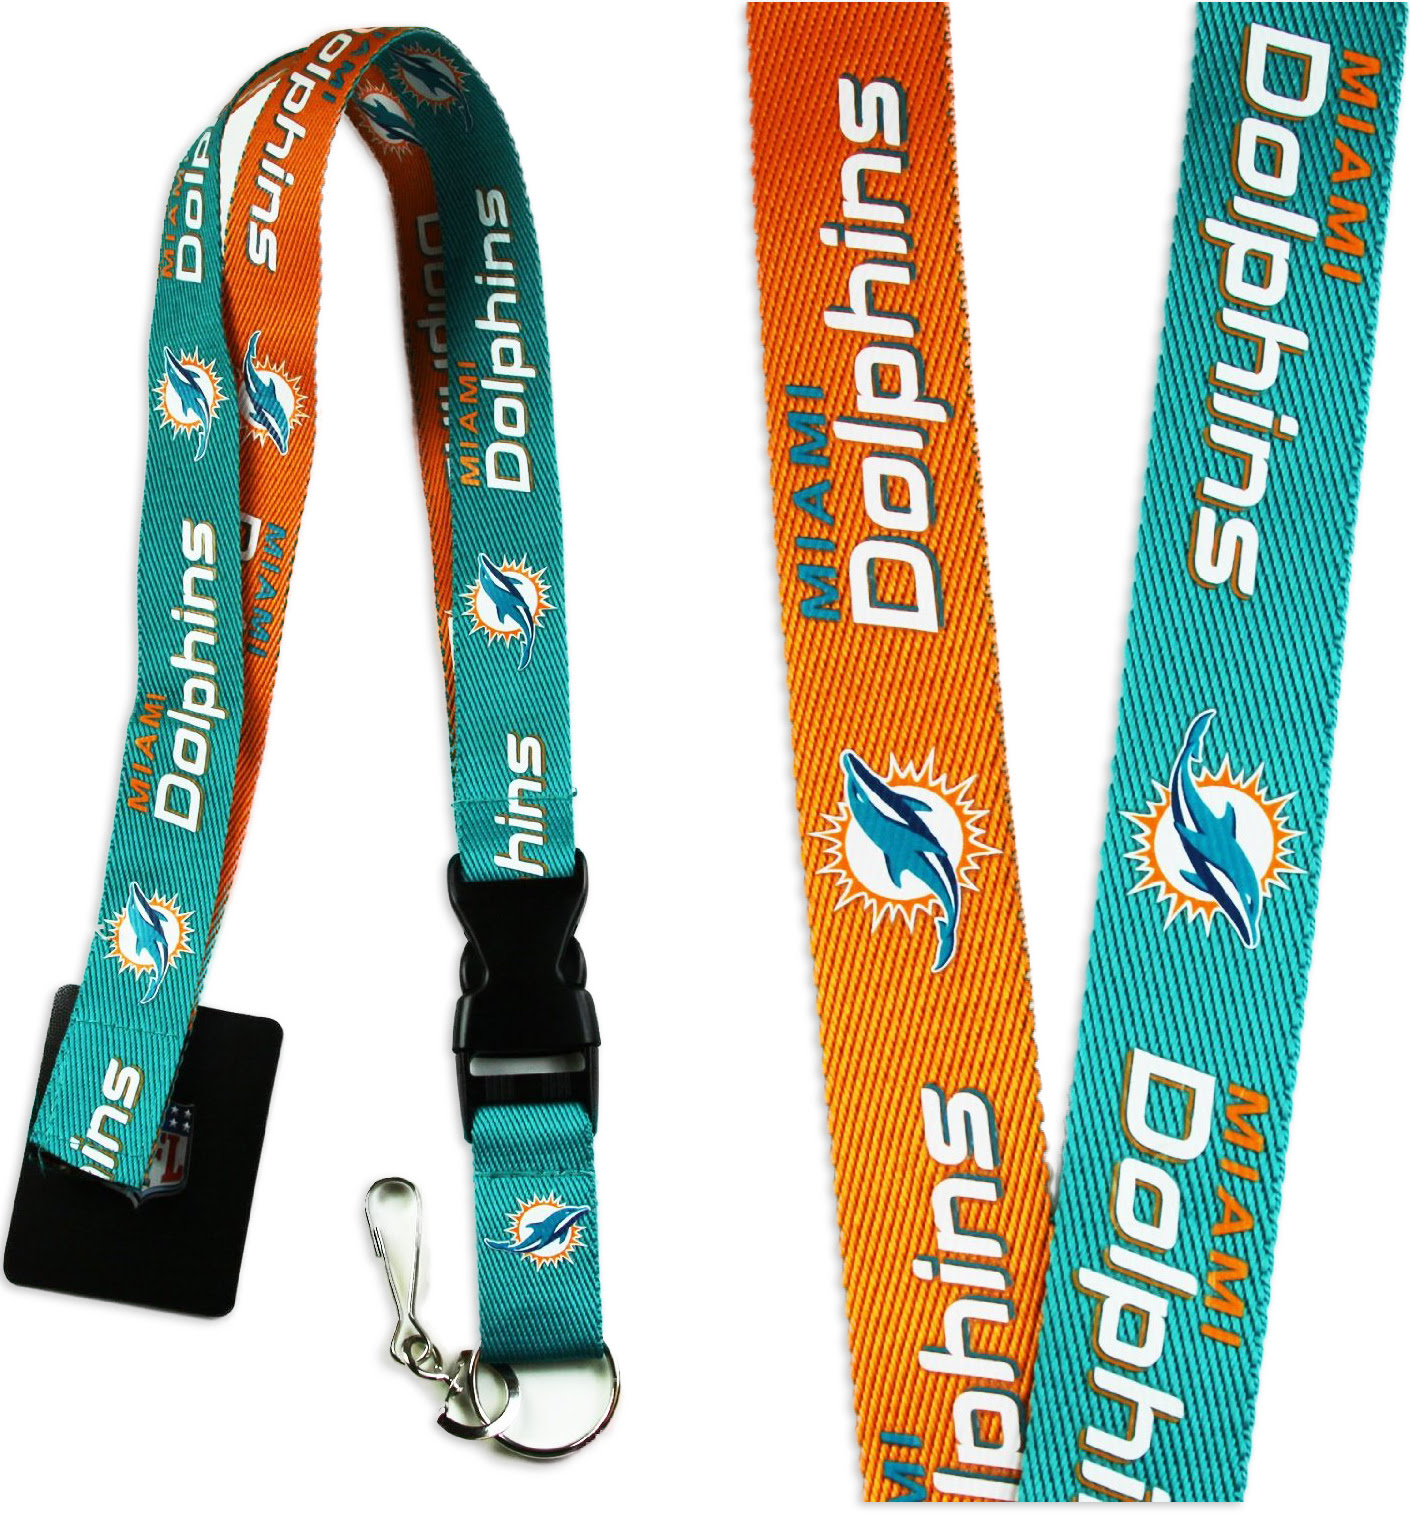 MIAMI DOLPHINS 2TONE NFL TEAM BREAKAWAY LANYARD KEYCHAIN KEY ID HOLDER  eBay